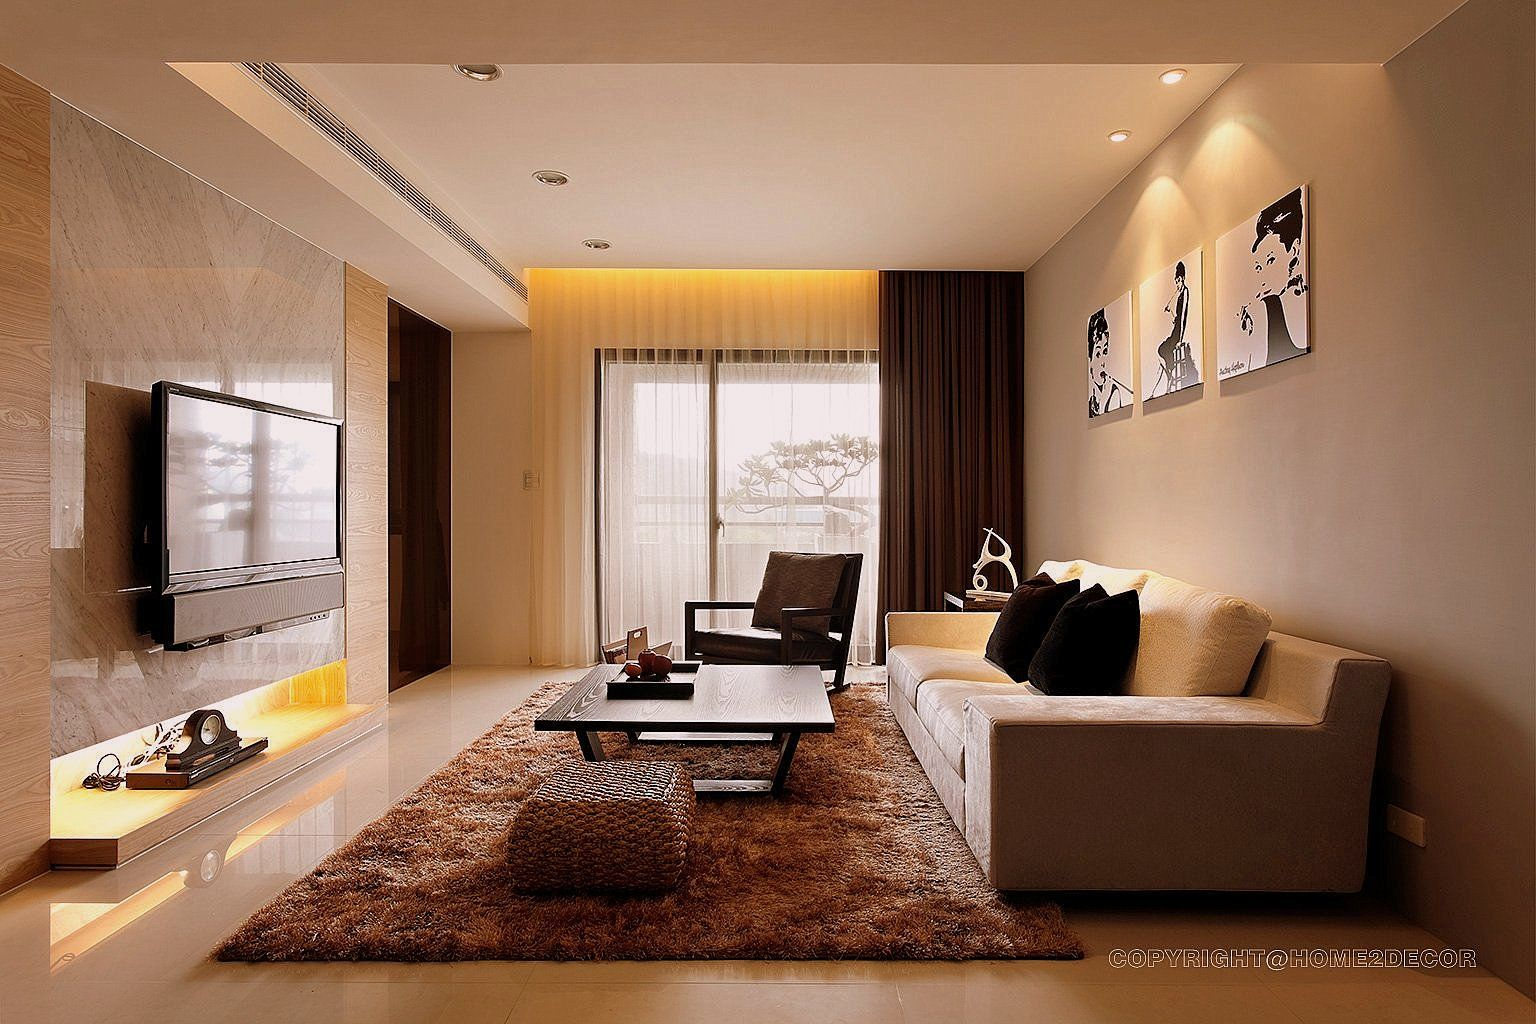 We Are The Offer Best Interior Designers Decorators In Mumbai Navi Pune And Minimalist Living RoomsContemporary